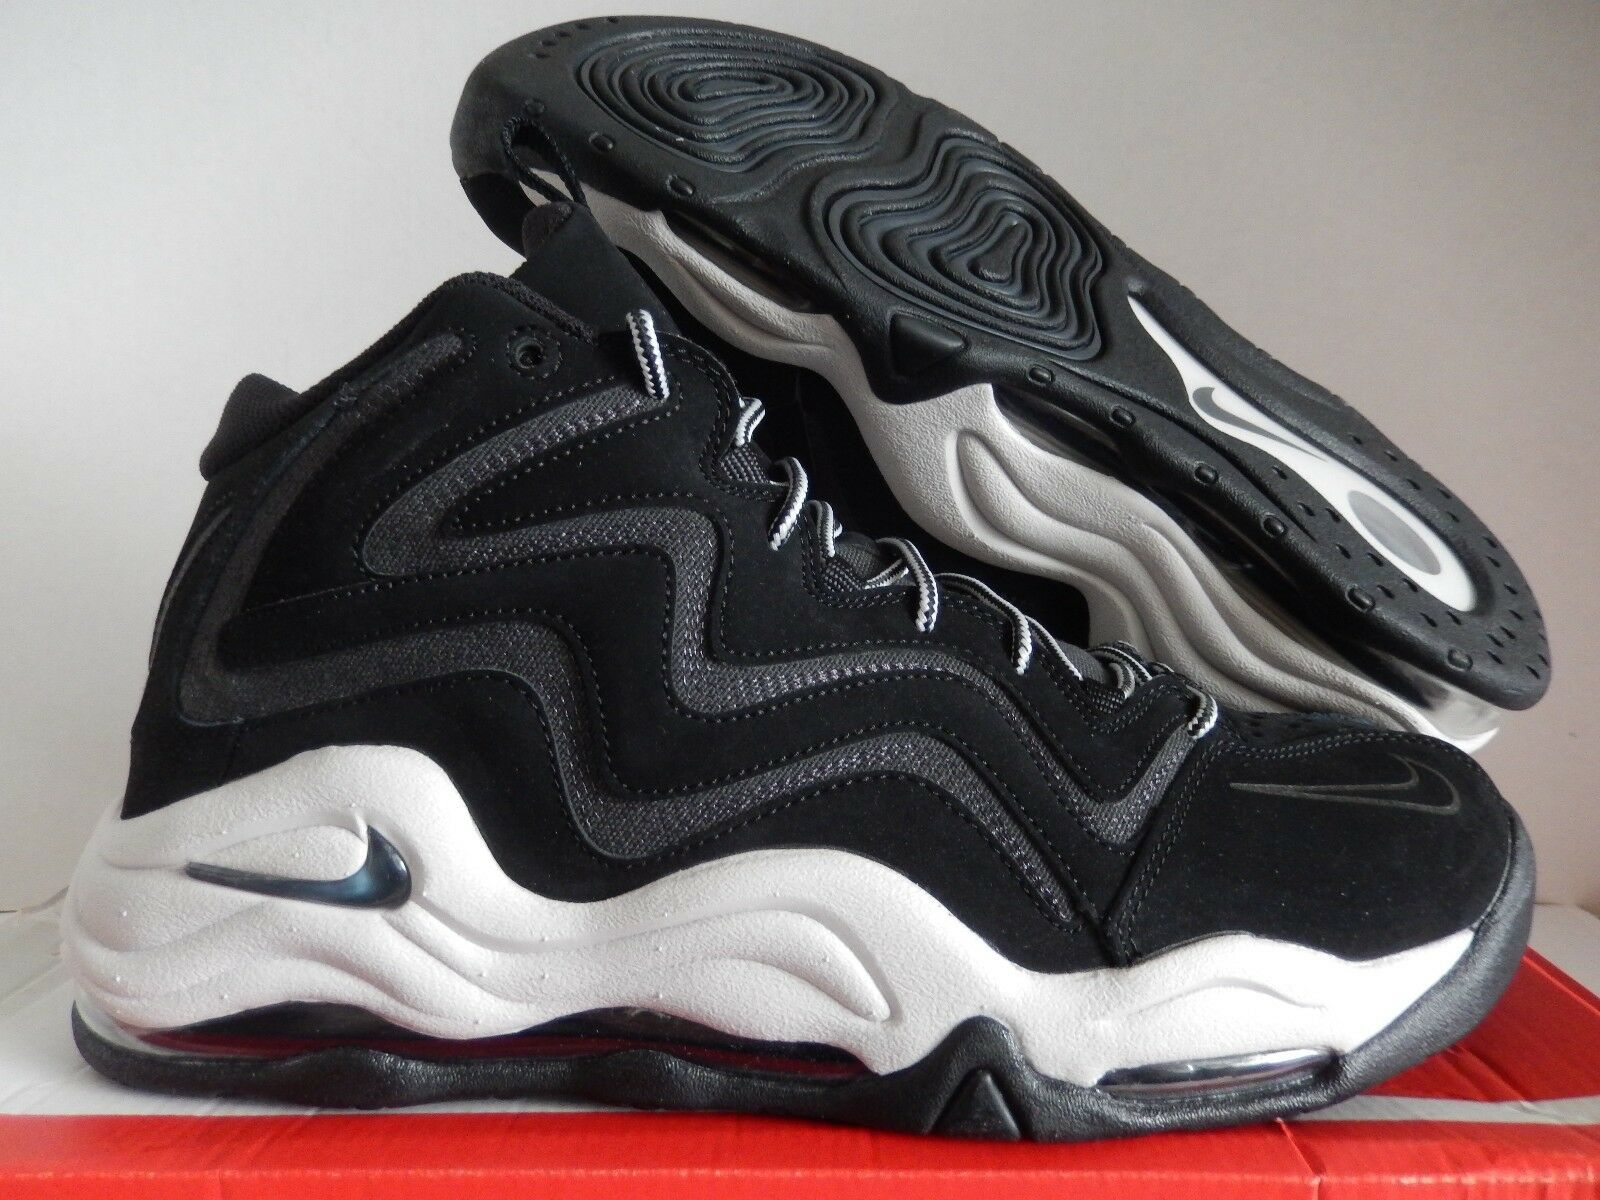 Nike air pippen nero-anthracite-vast grey sz 11 [325001-004]